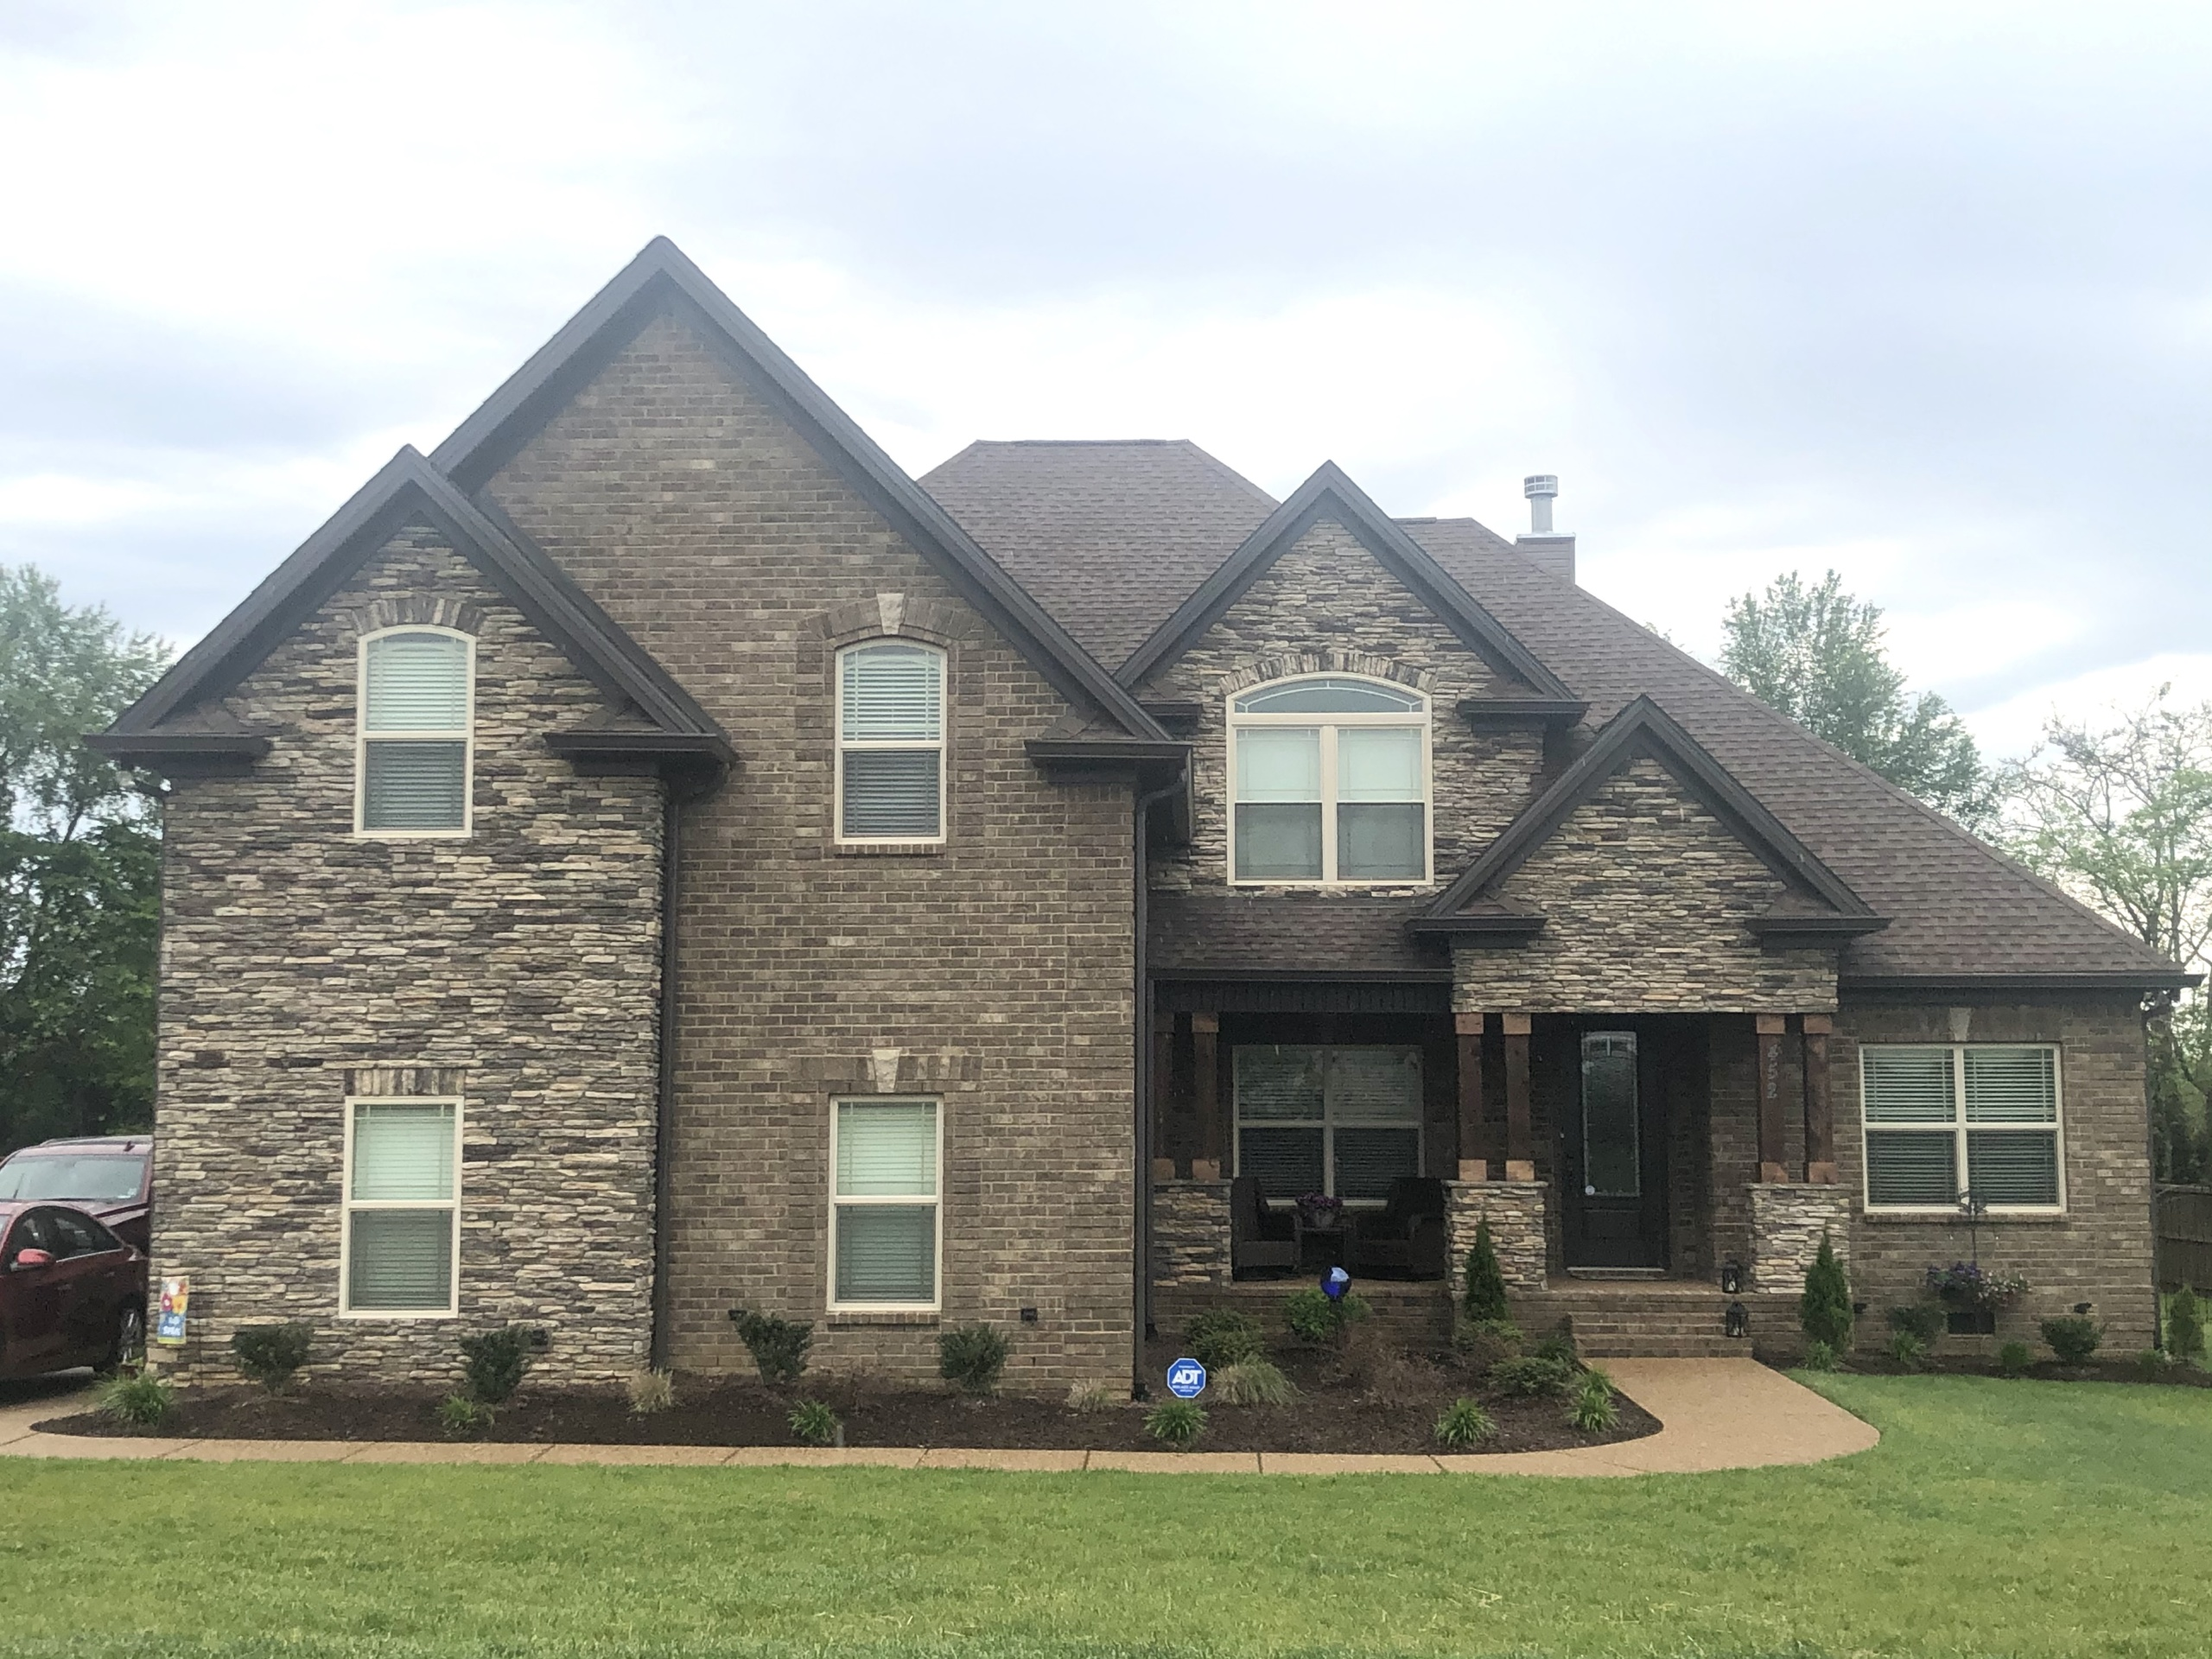 31 Stonefield - 452 Cobblestone Way